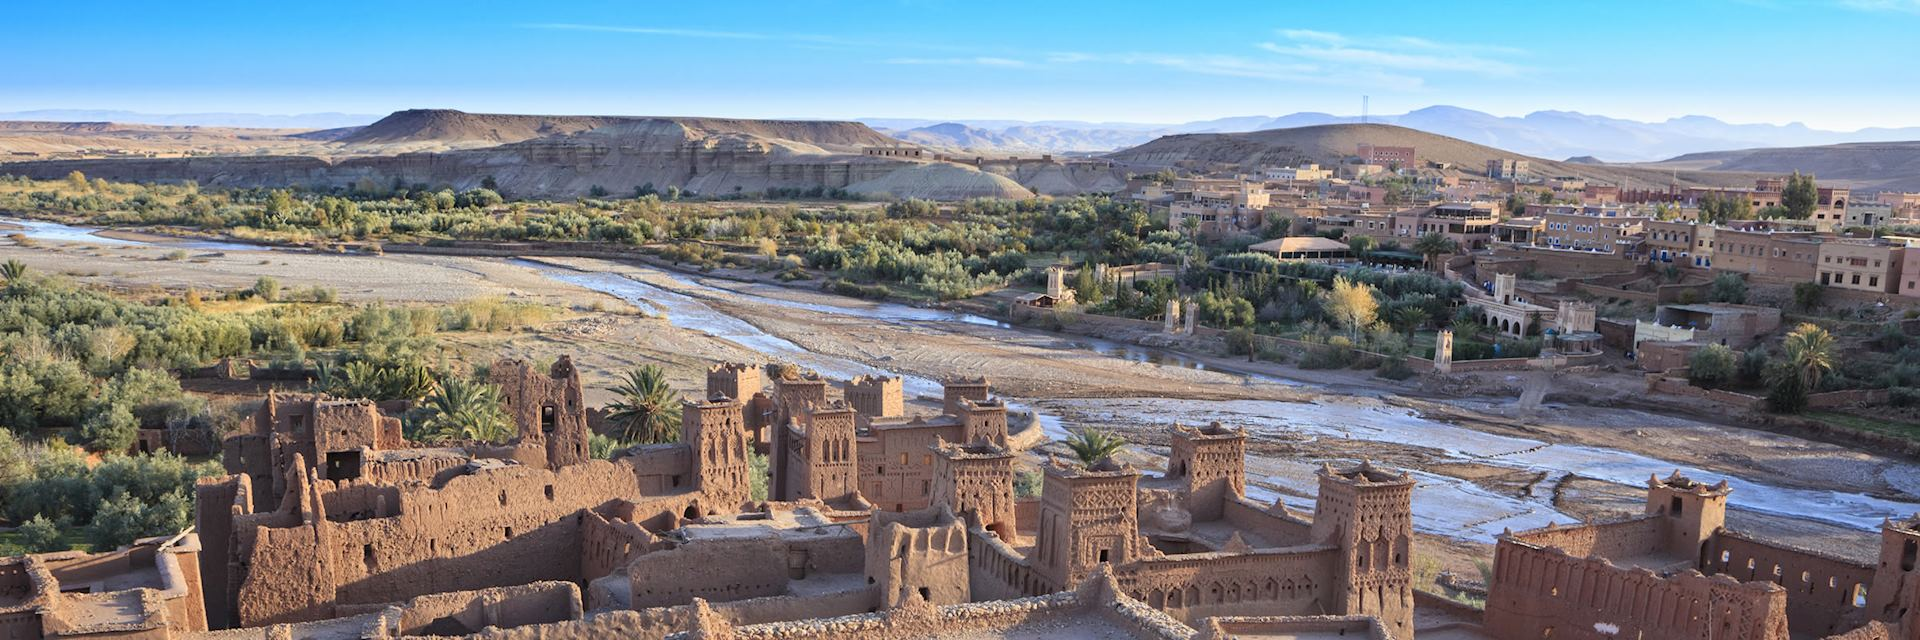 Ait Benhaddou in the High Atlas Mountains